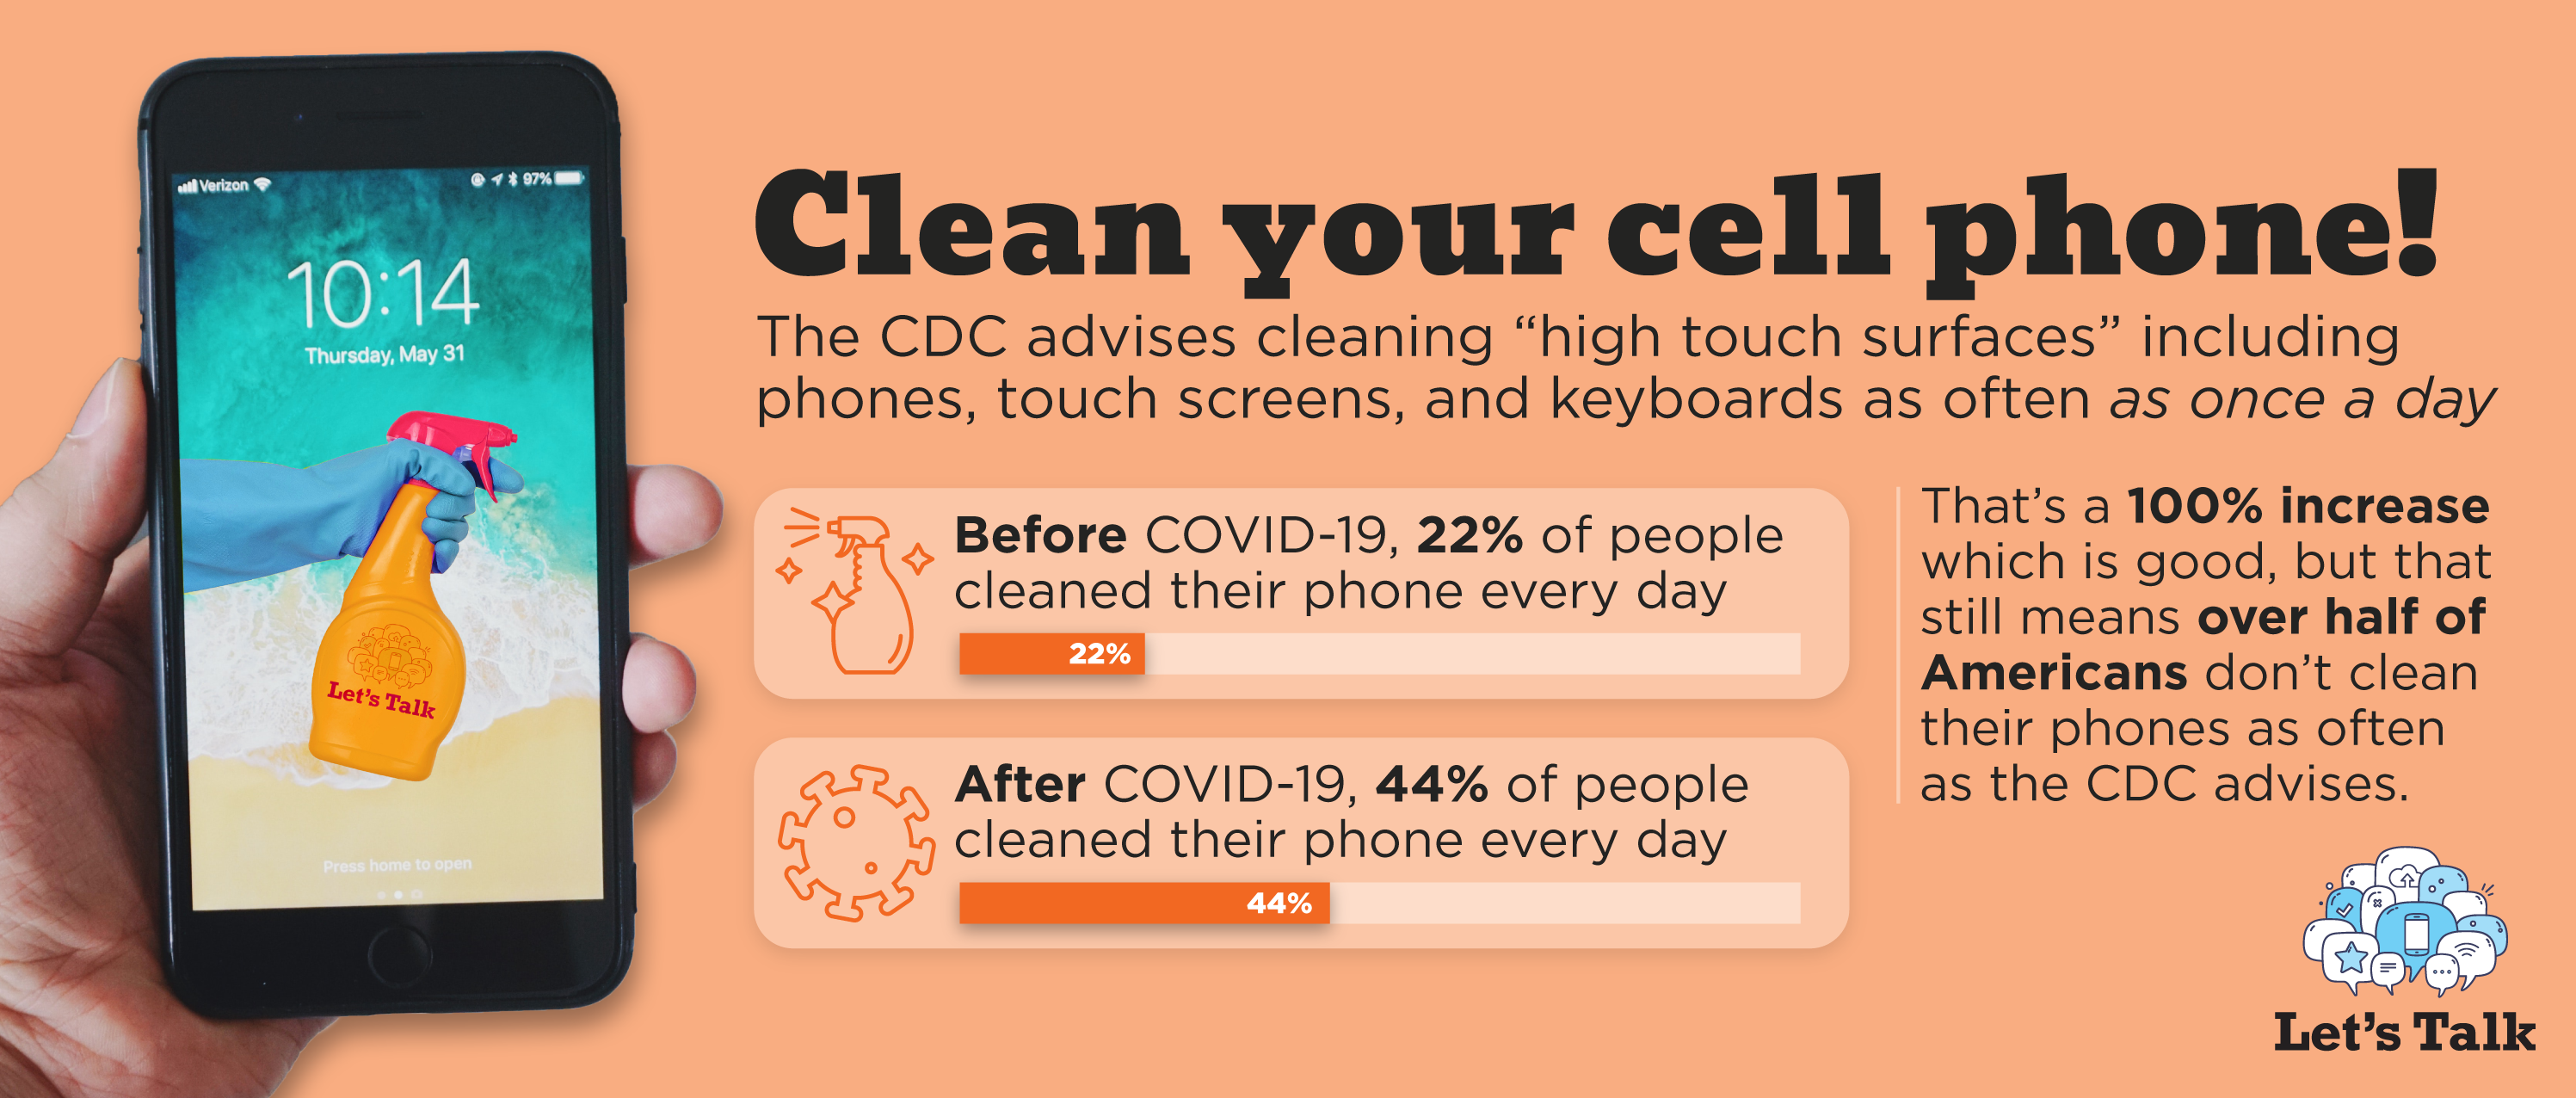 Clean your cell phone infographic